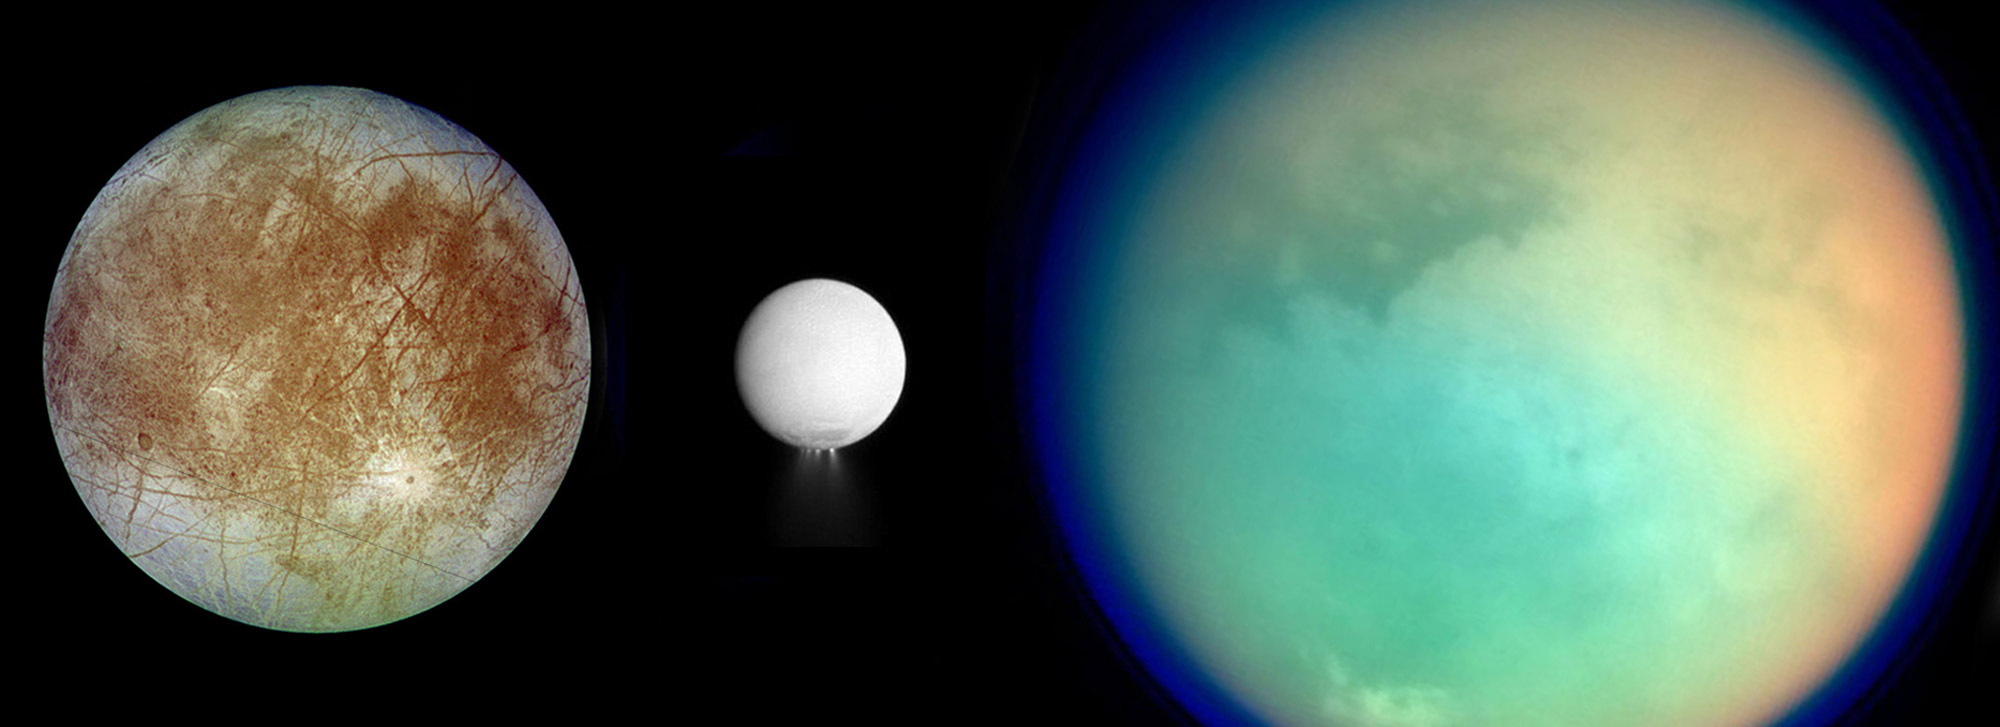 Accessing the Subsurface Oceans of Icy Worlds